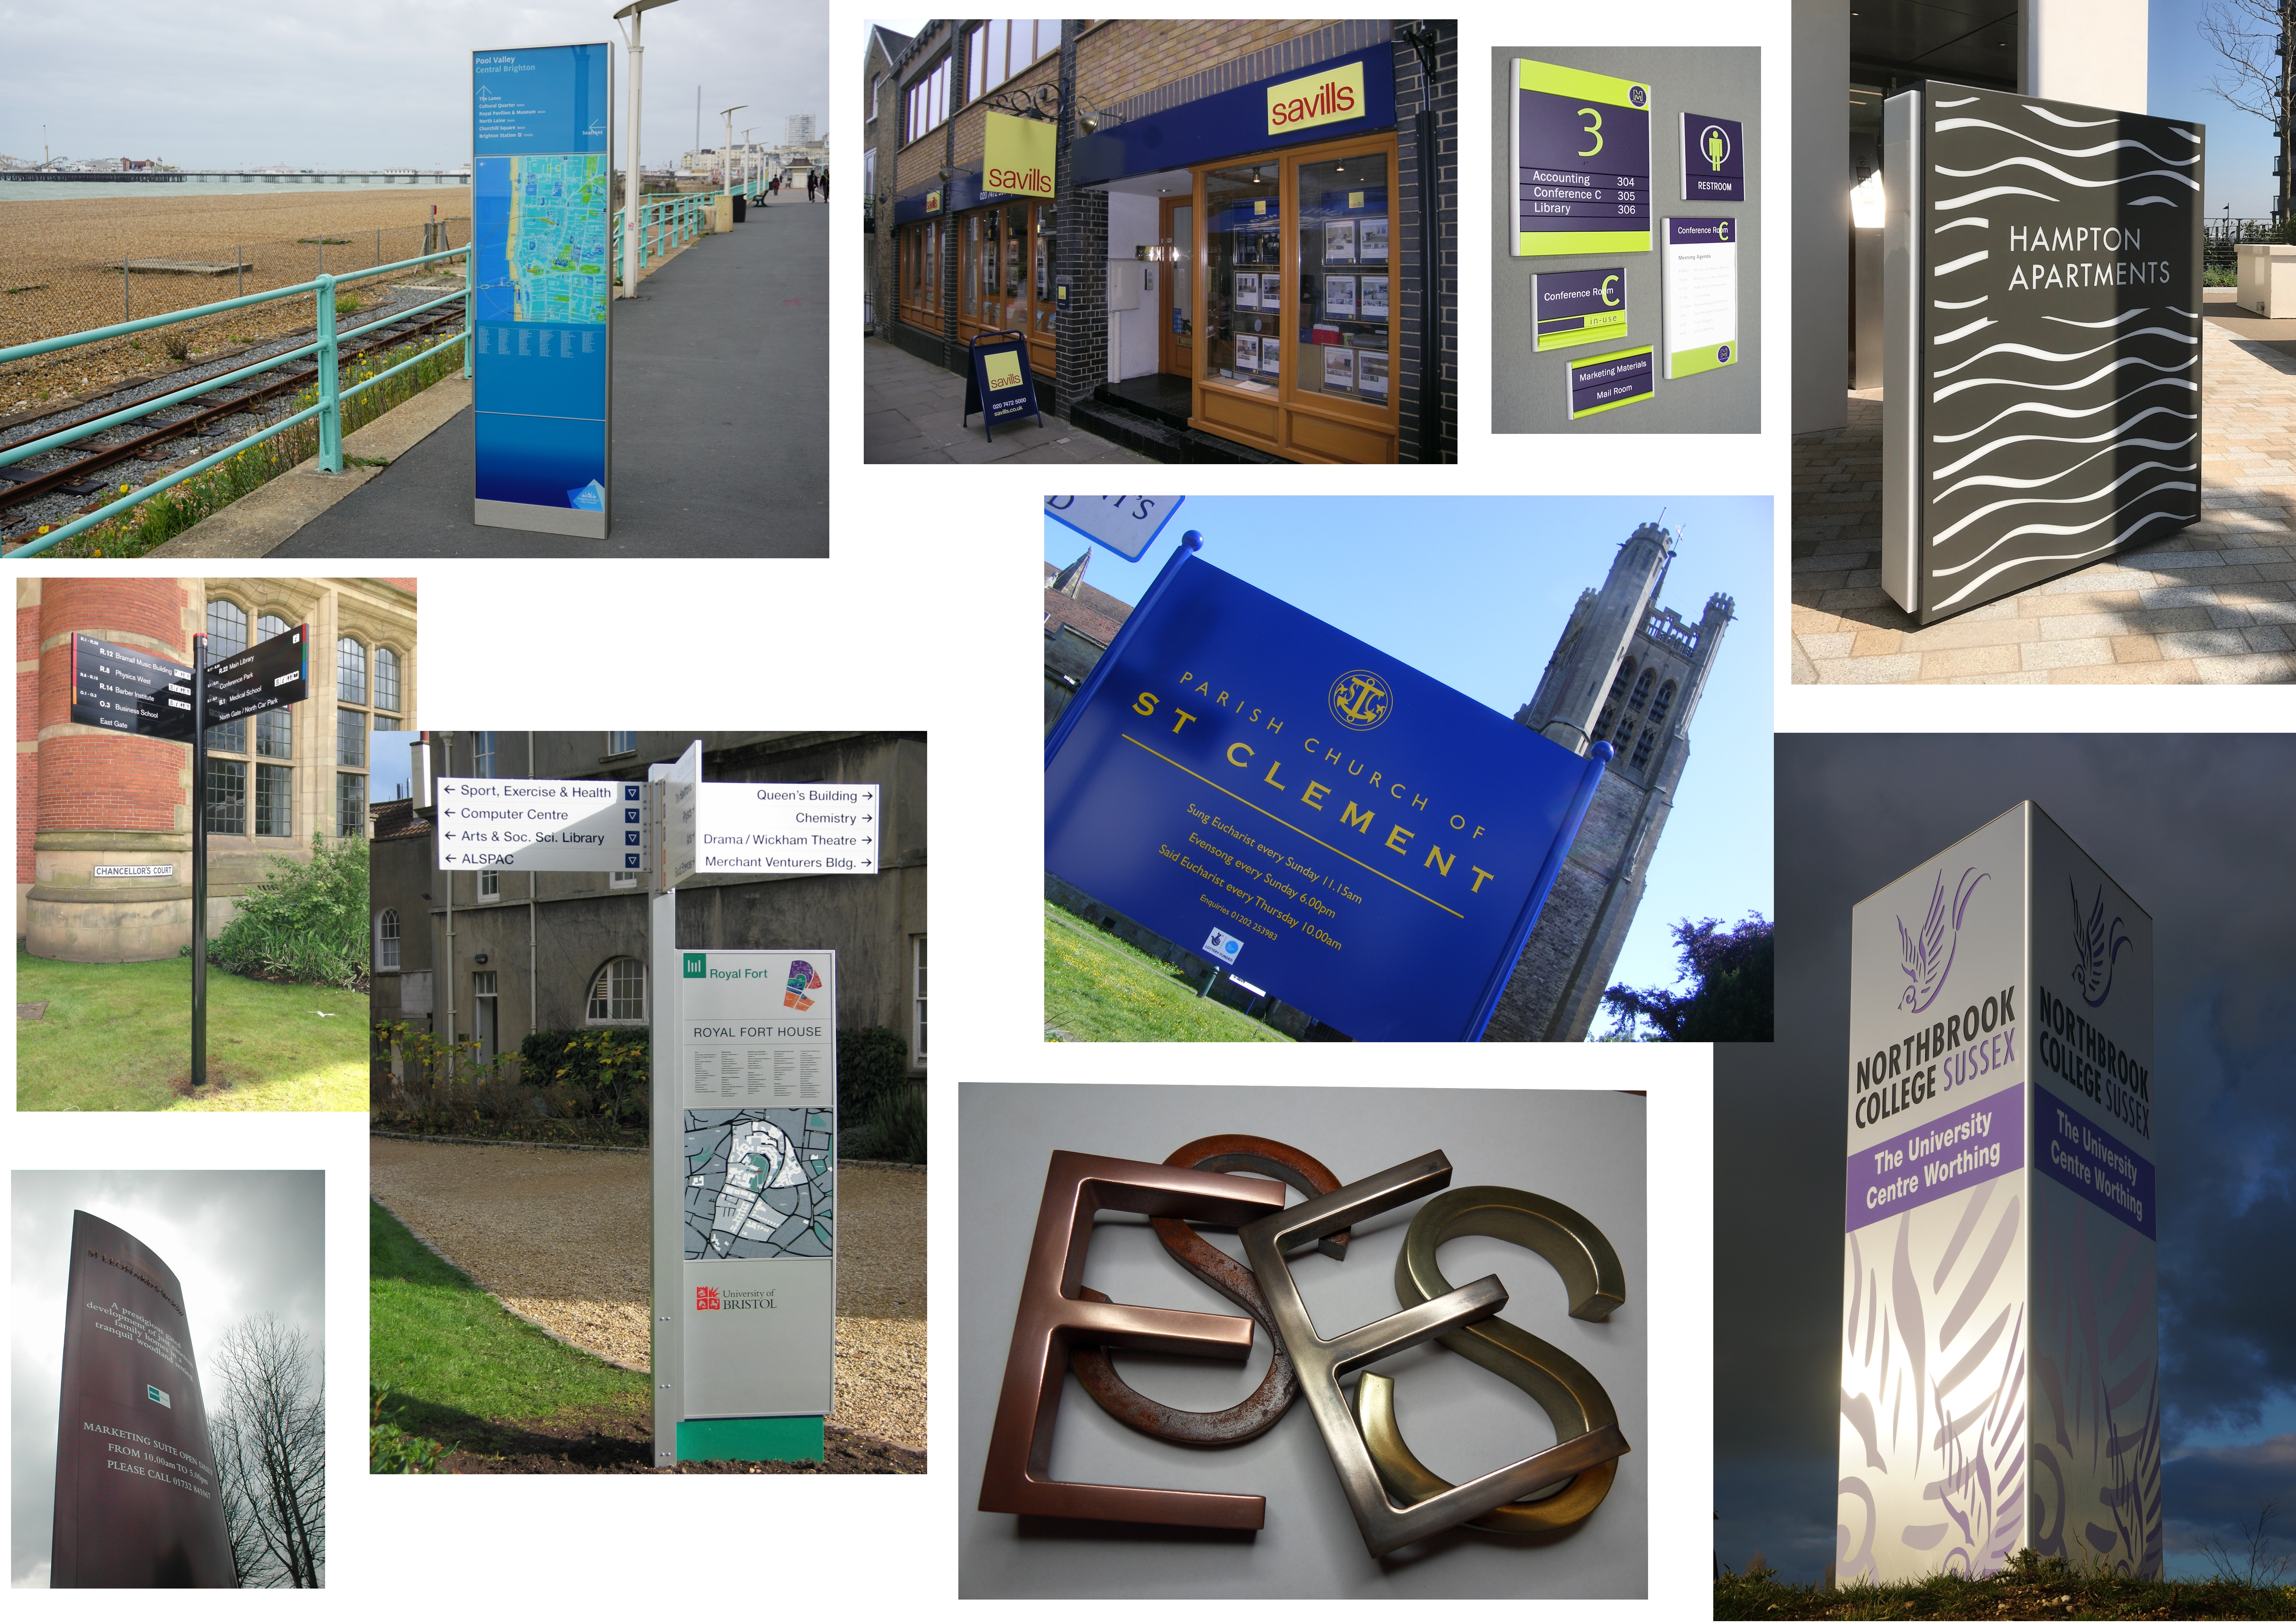 Composite image of Simplex Ltd signs